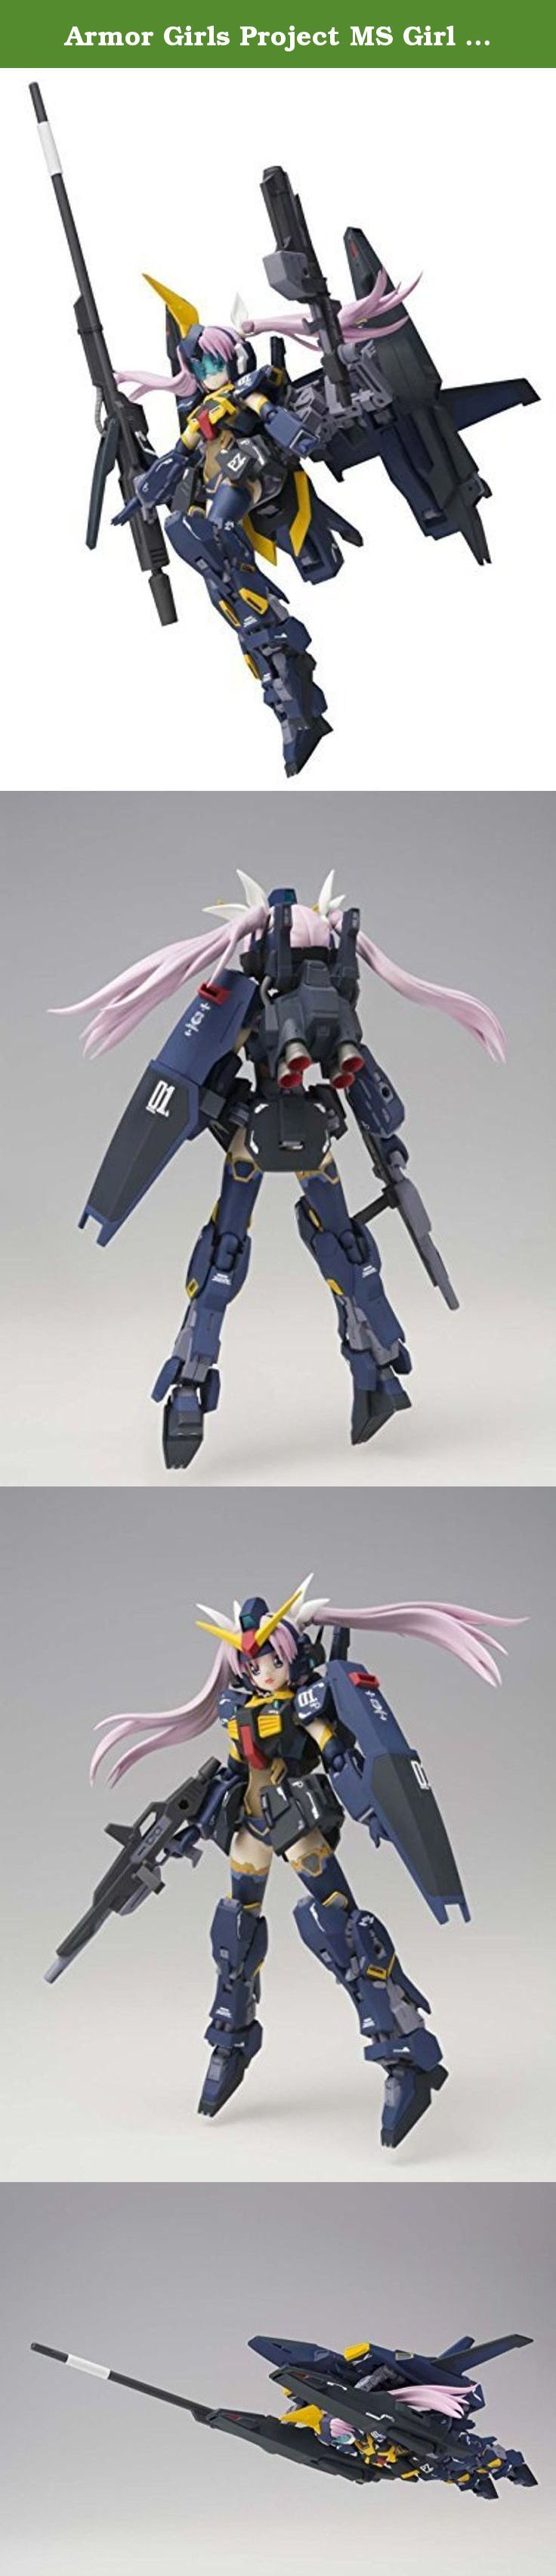 Armor Girls Project MS Girl Gundam Mk-II (Titans specification) about 140mm ABS & PVC painted action figure. It's shipped off from Japan.